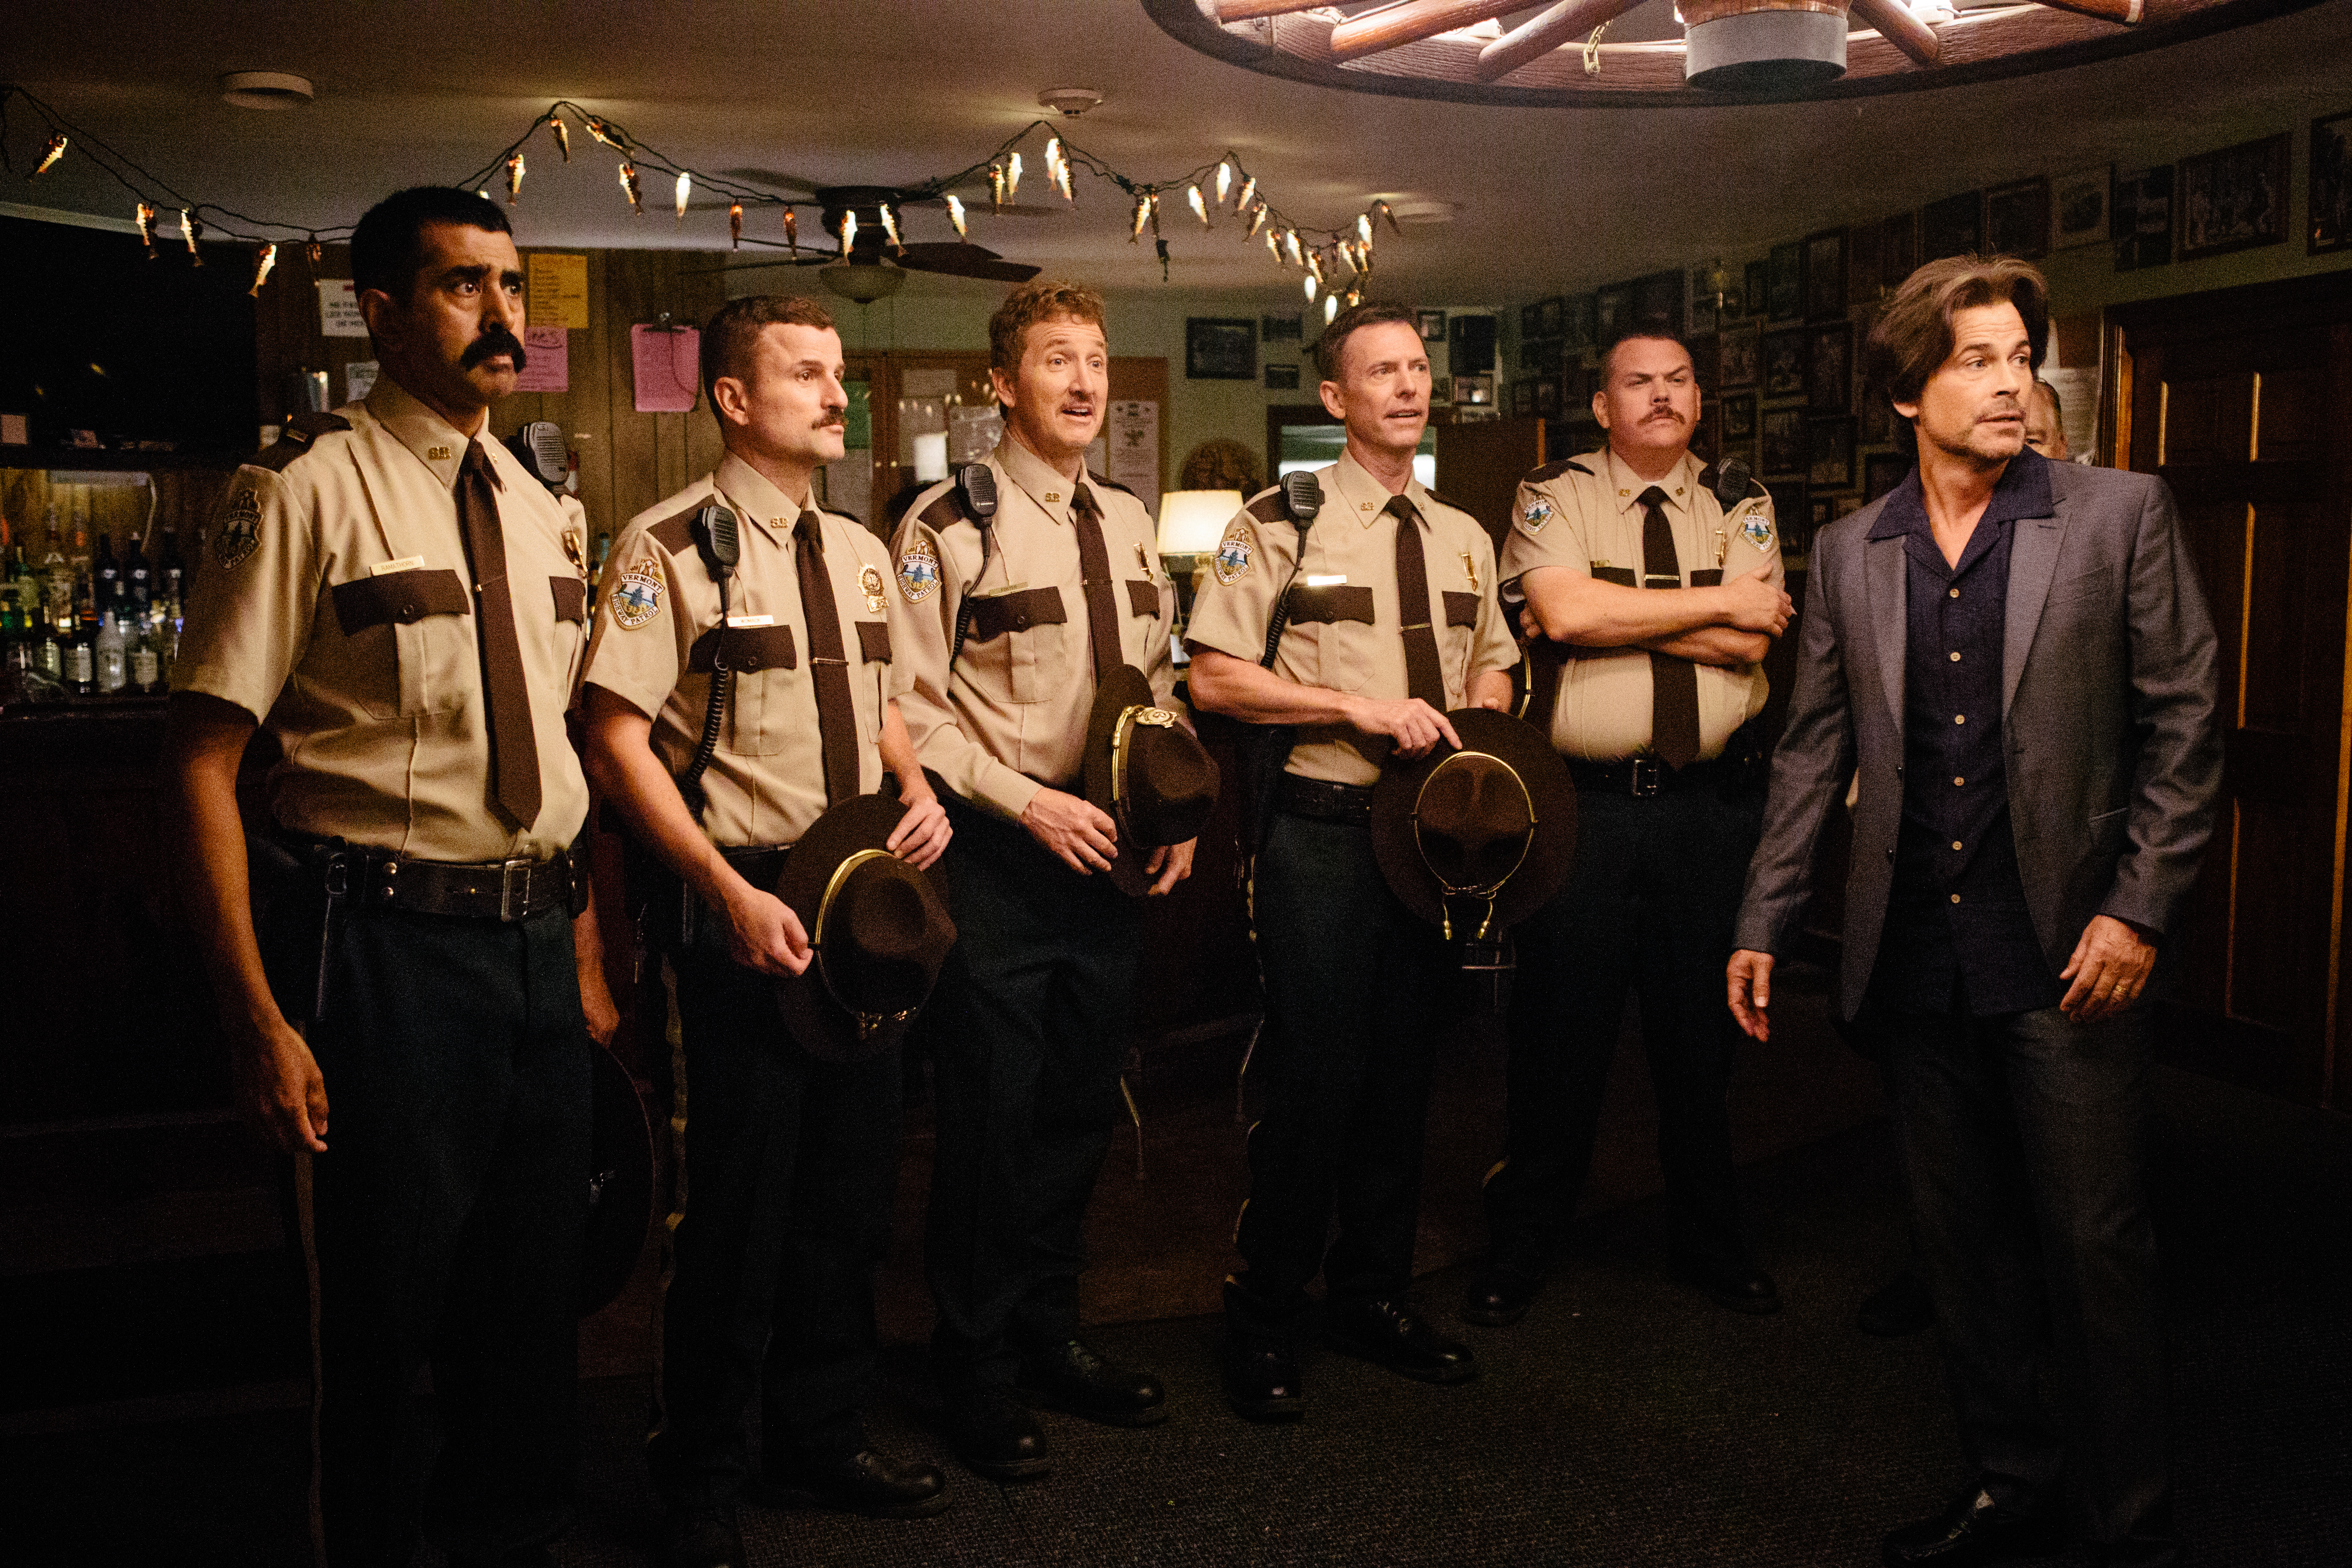 Here is the Red Band Trailer for Super Troopers 2